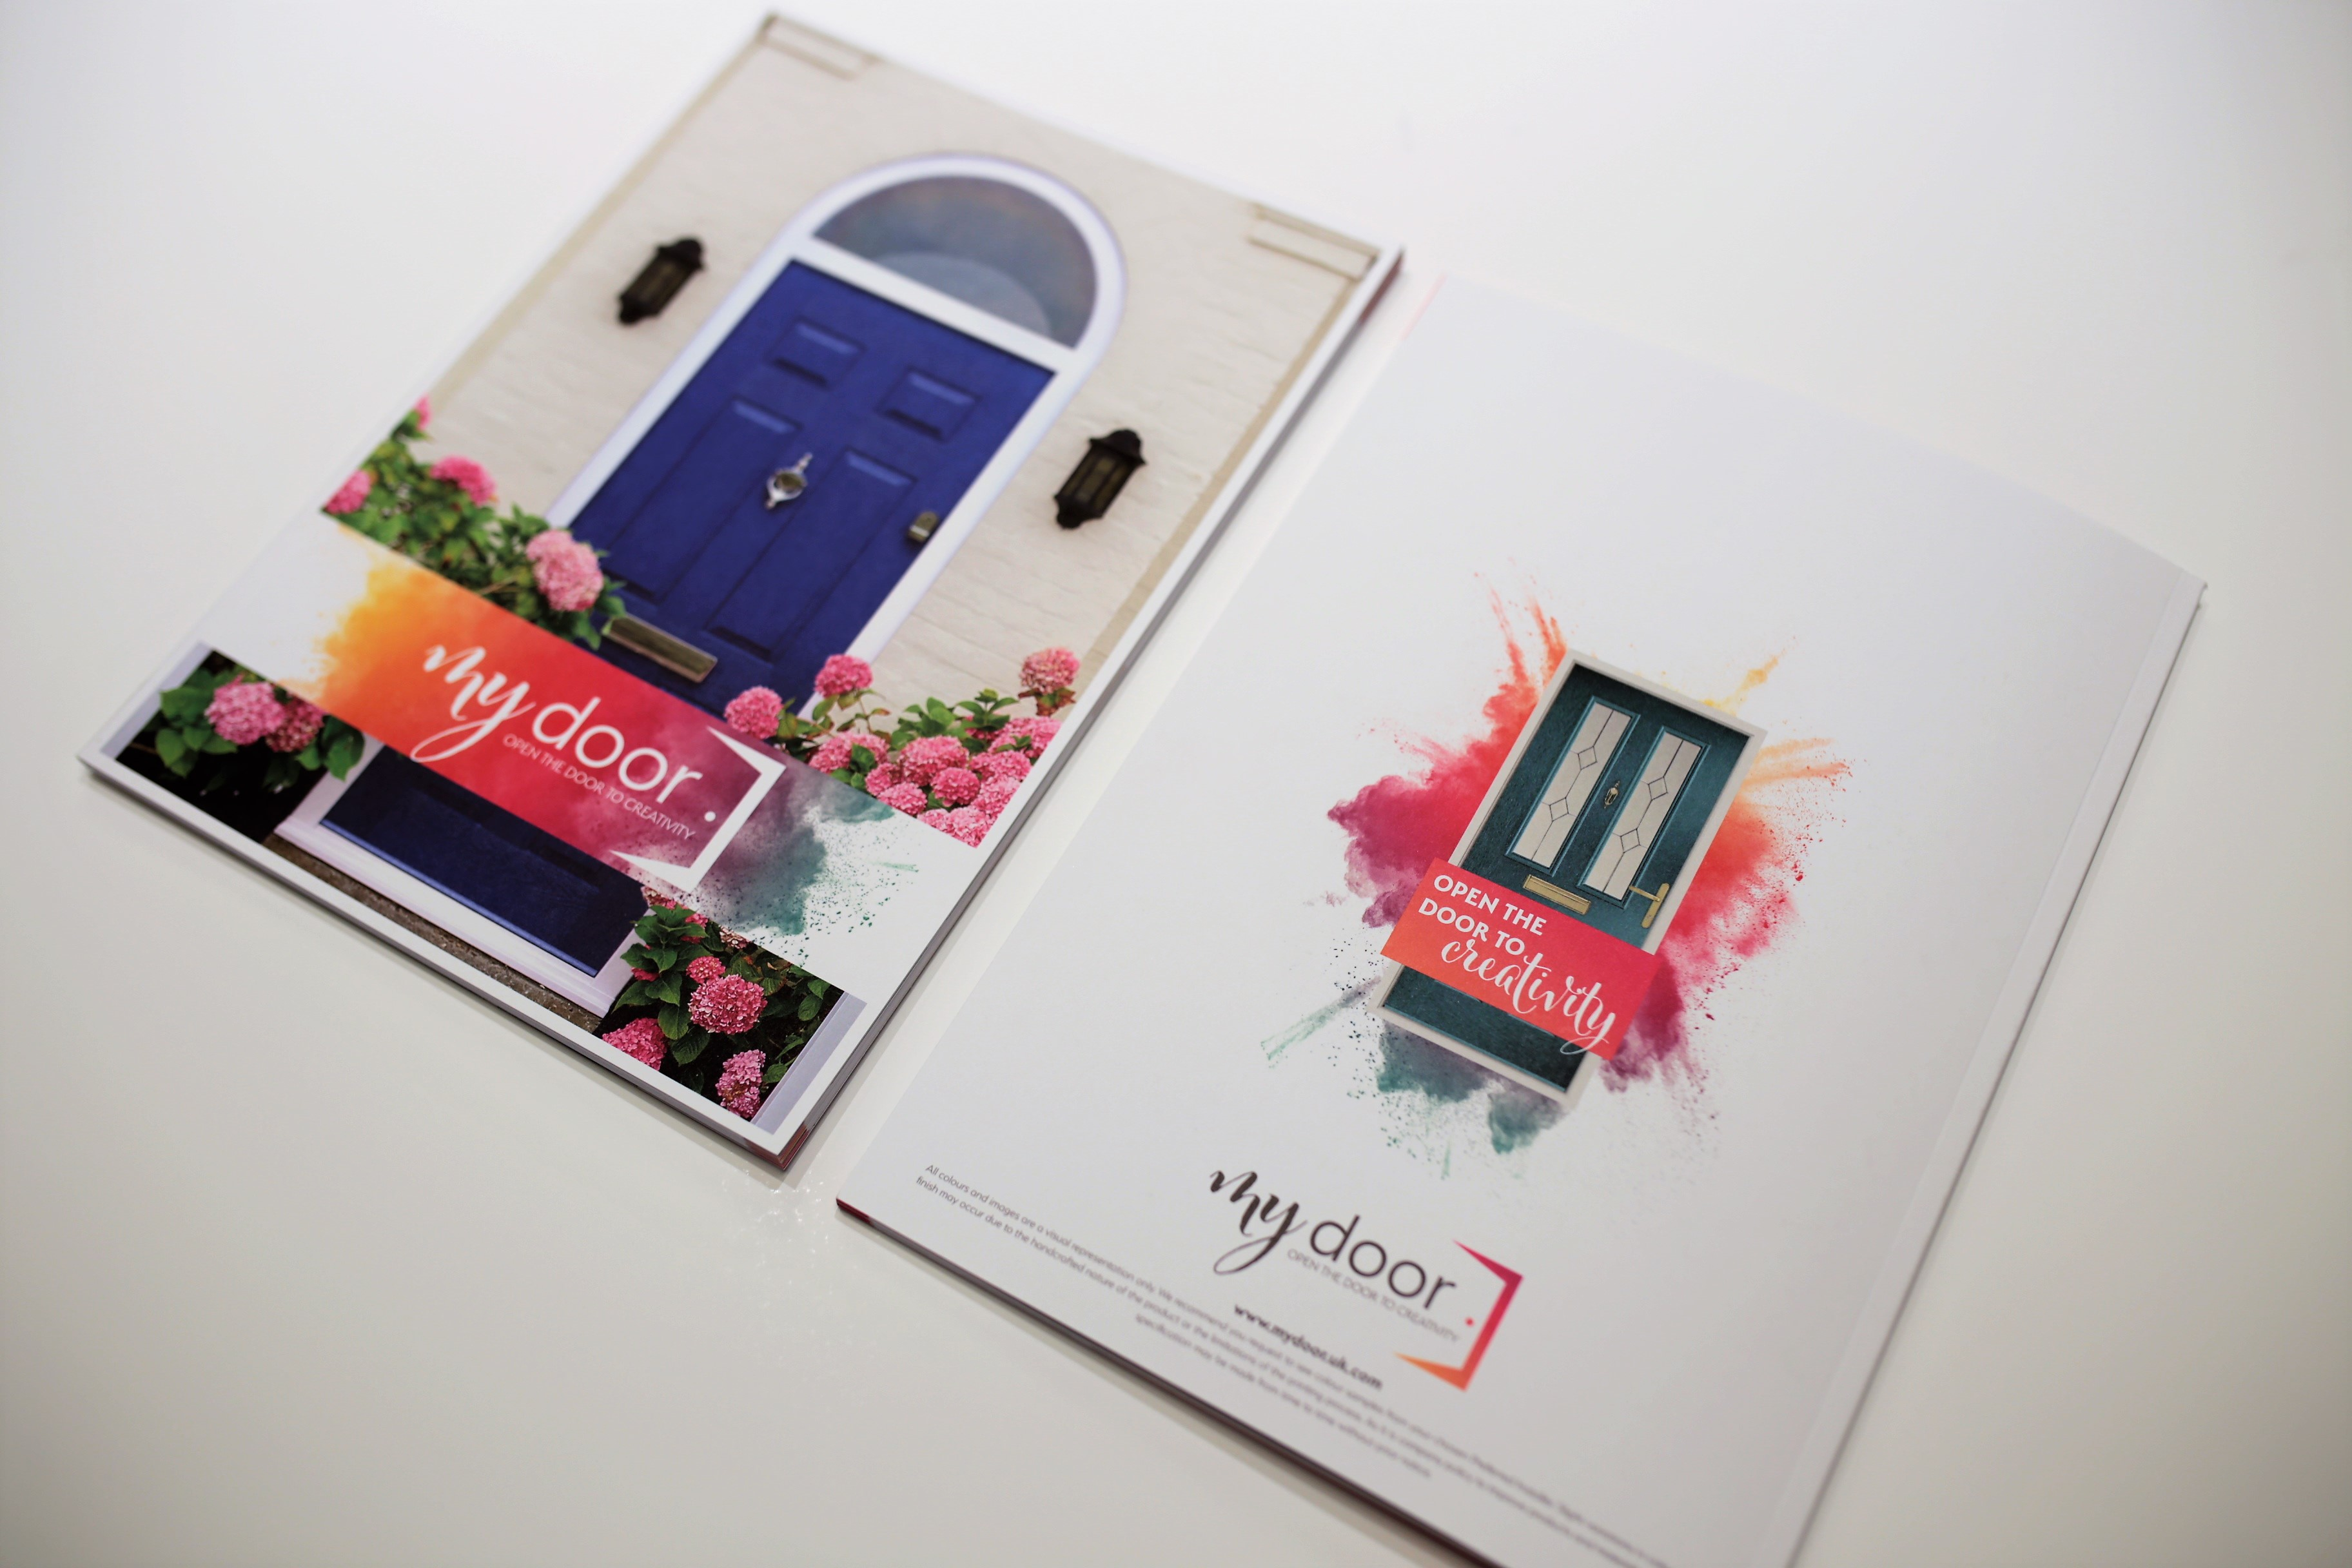 Front and back cover of My Door brochure